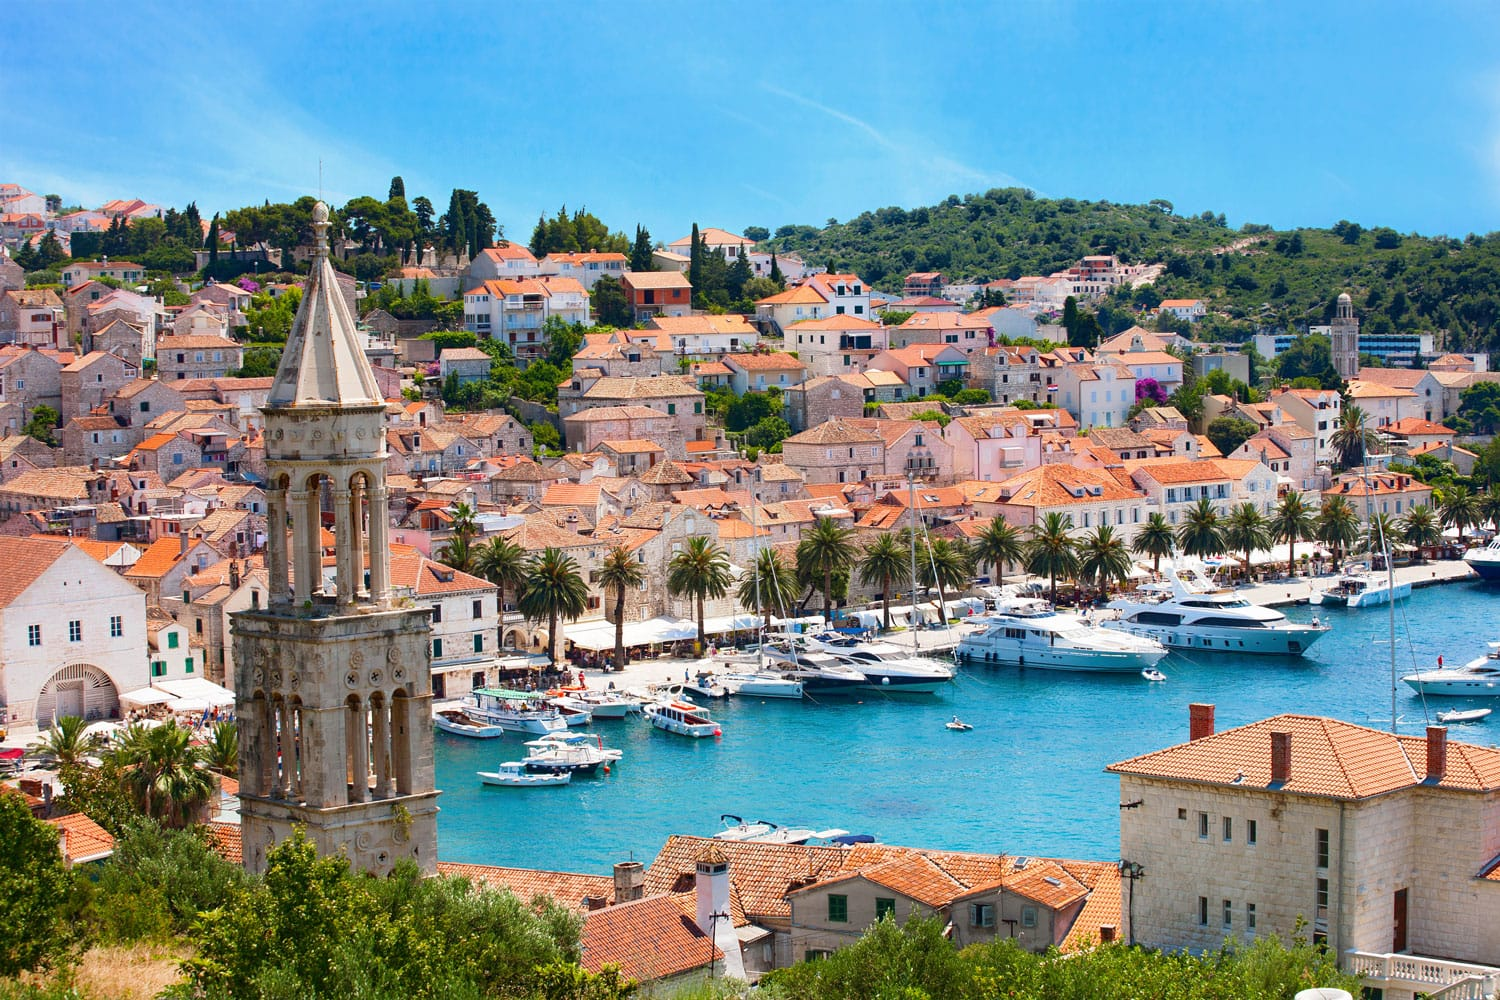 View of Hvar city in Croatia